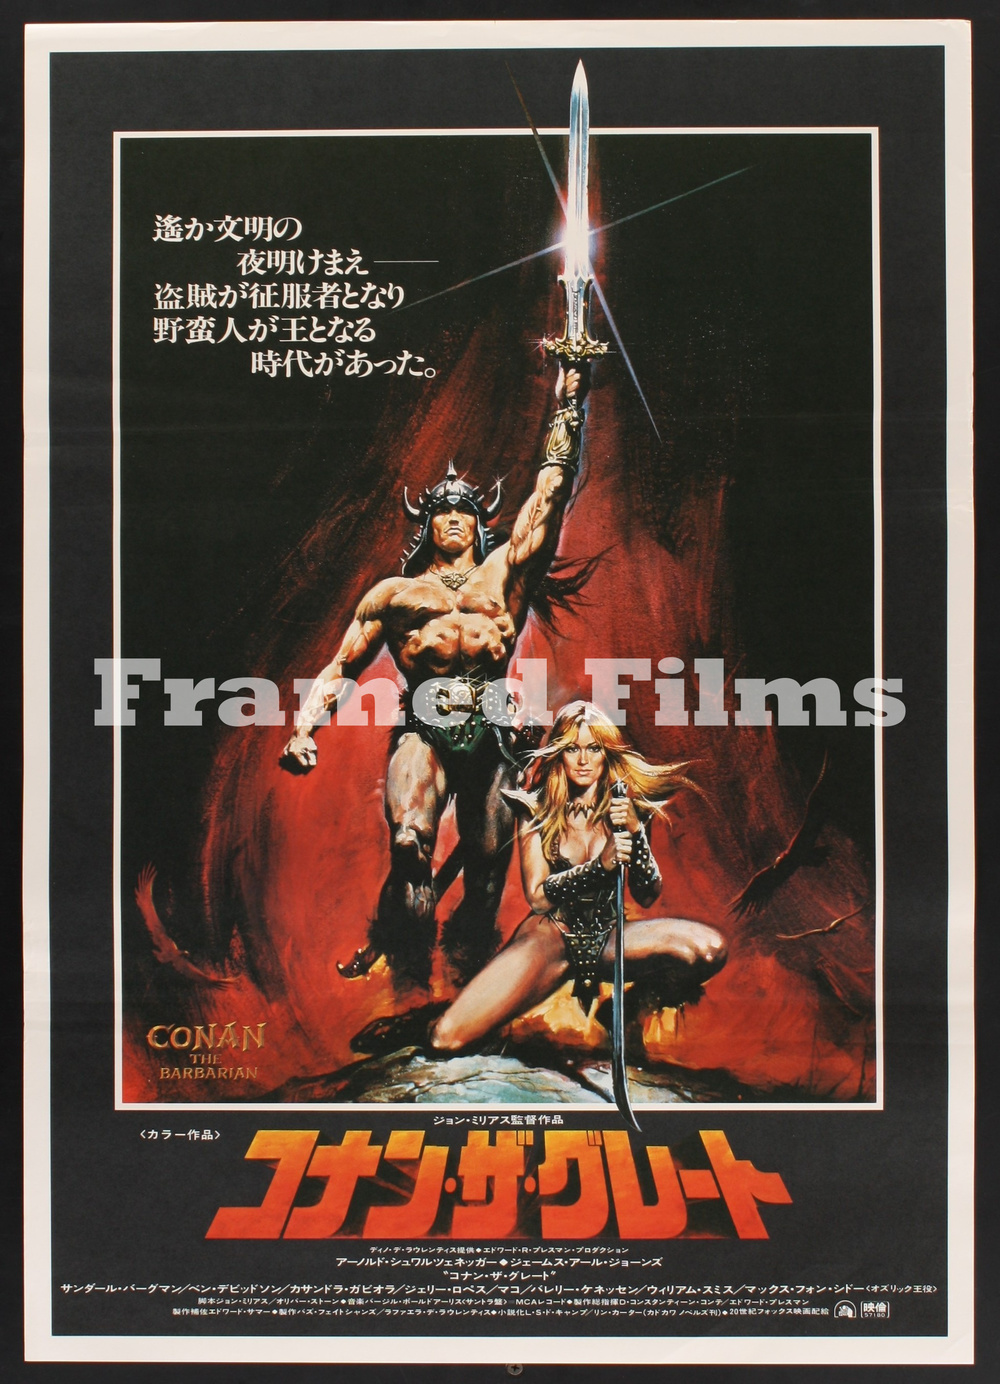 japanese_b2_conan_the_barbarian_dupe1_JC00842_L.jpg